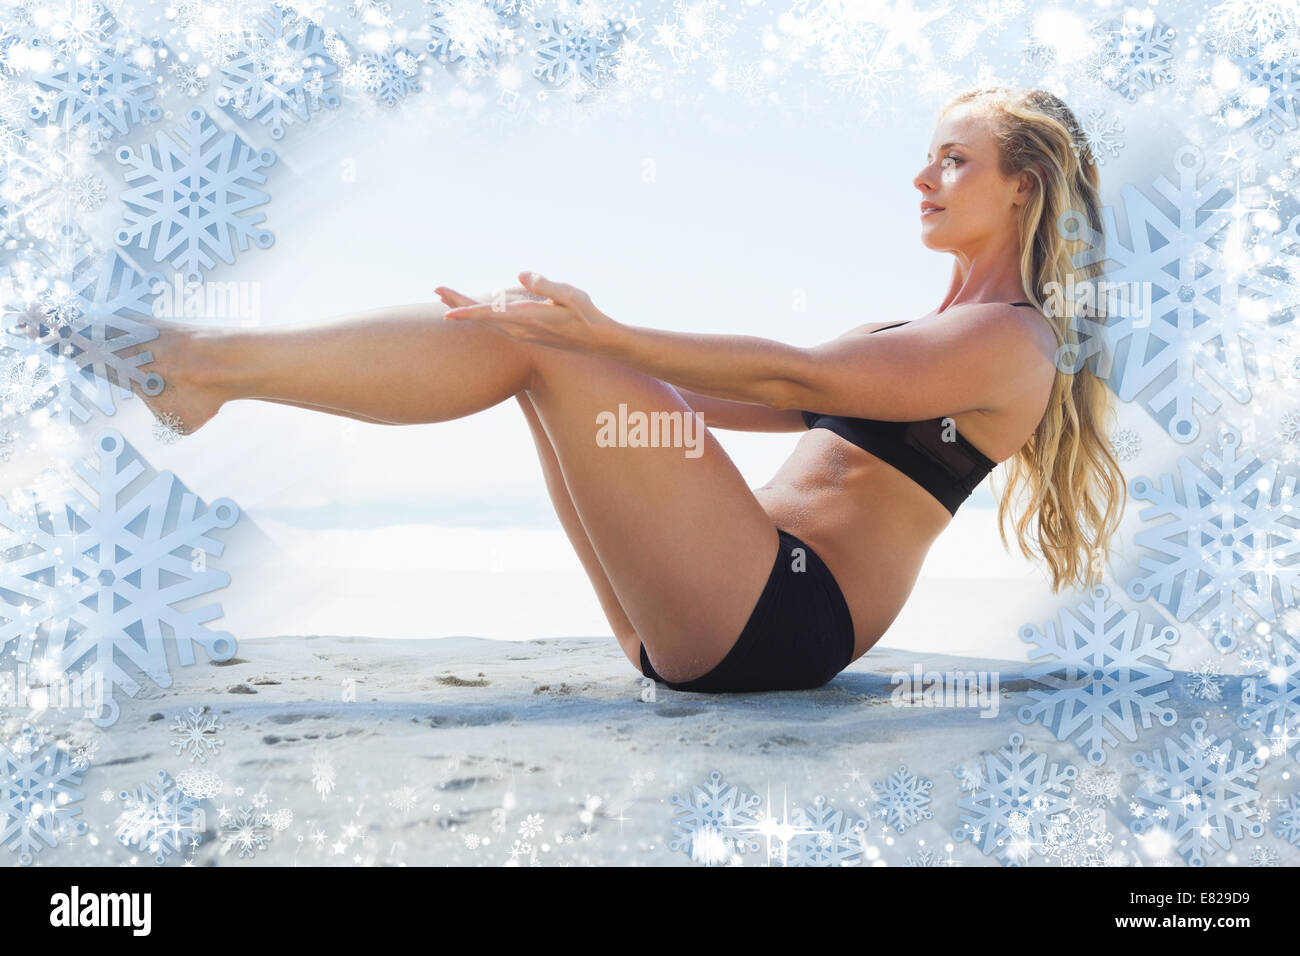 Fit blonde in core balance pilates pose on the beach - Stock Image